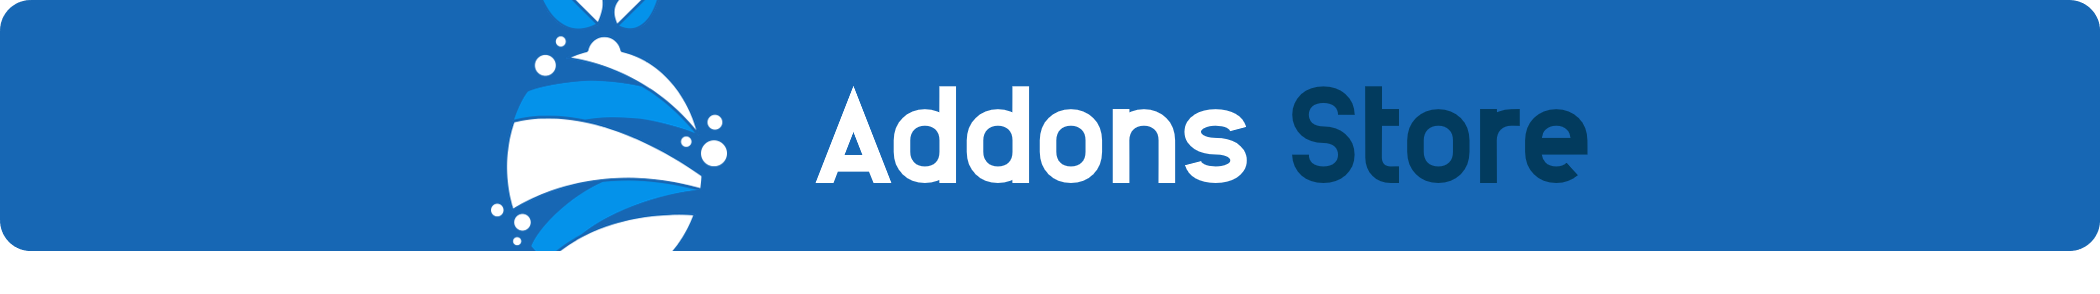 Addons Store.png